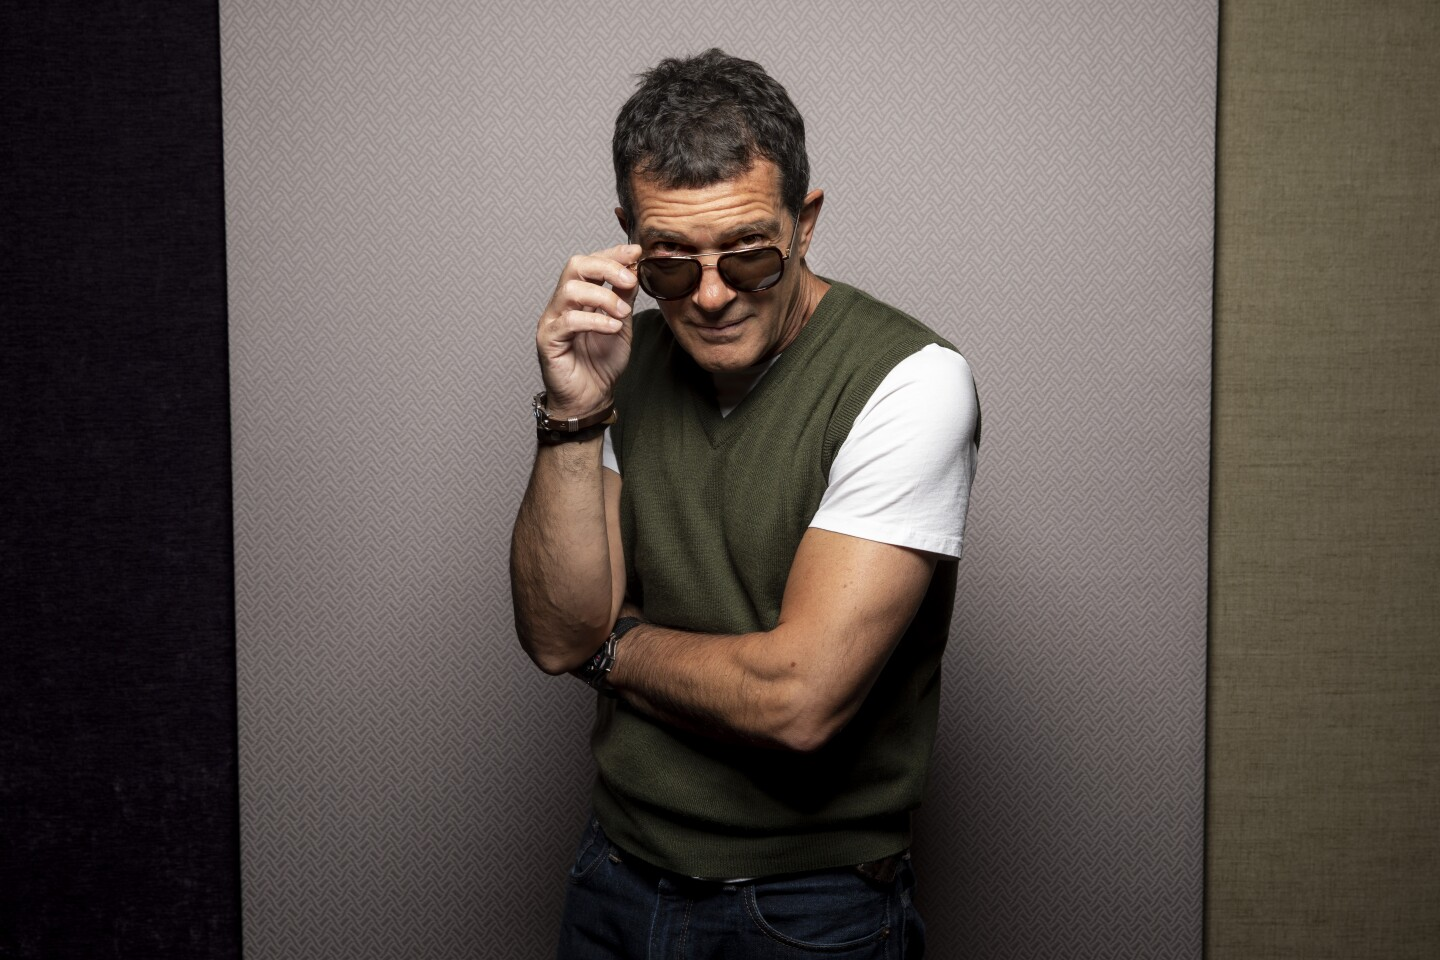 """TORONTO, ONT., CAN -- SEPTEMBER 09, 2019-- Actor Antonio Banderas, from the film """"The Laundromat,"""" photographed in the L.A. Times Photo Studio at the Toronto International Film Festival, in Toronto, Ont., Canada on September 09, 2019. (Jay L. Clendenin / Los Angeles Times)"""